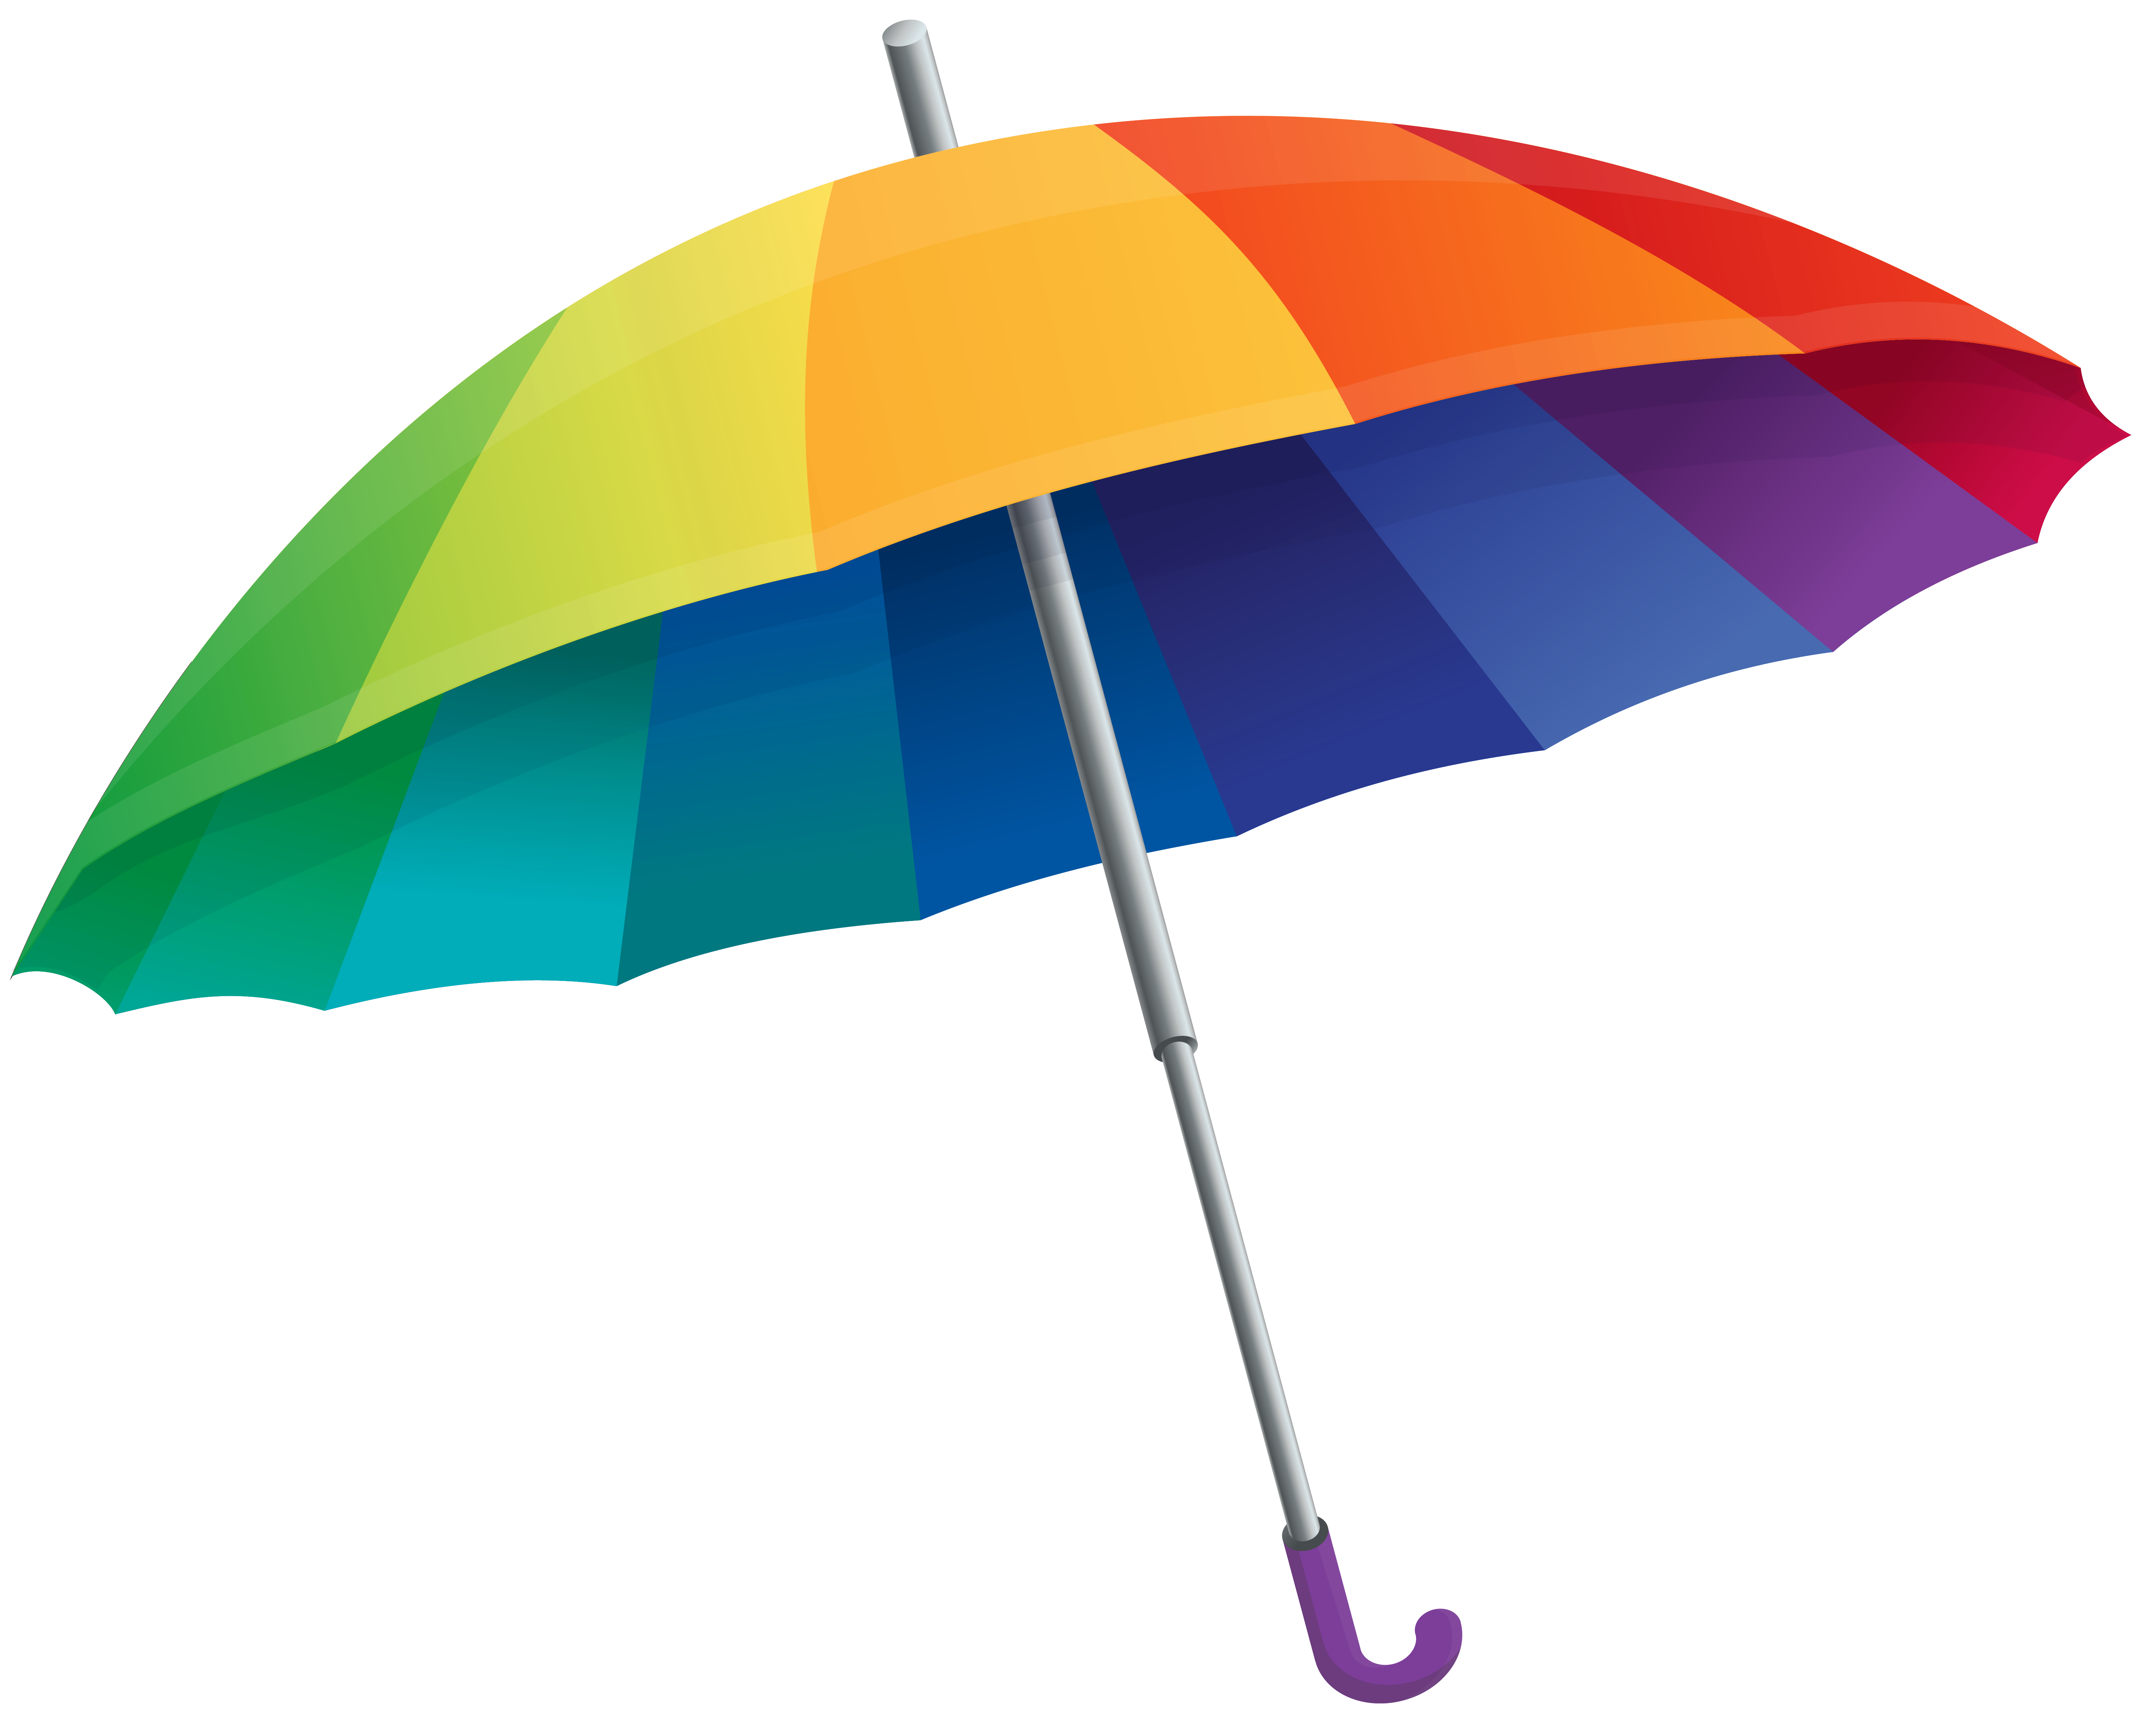 Rainbow Umbrella Png Clipart Image Gallery Yopriceville High Quality Images And Transparent Png Free Clipar Clip Art Photo Editing Tutorial Clipart Images